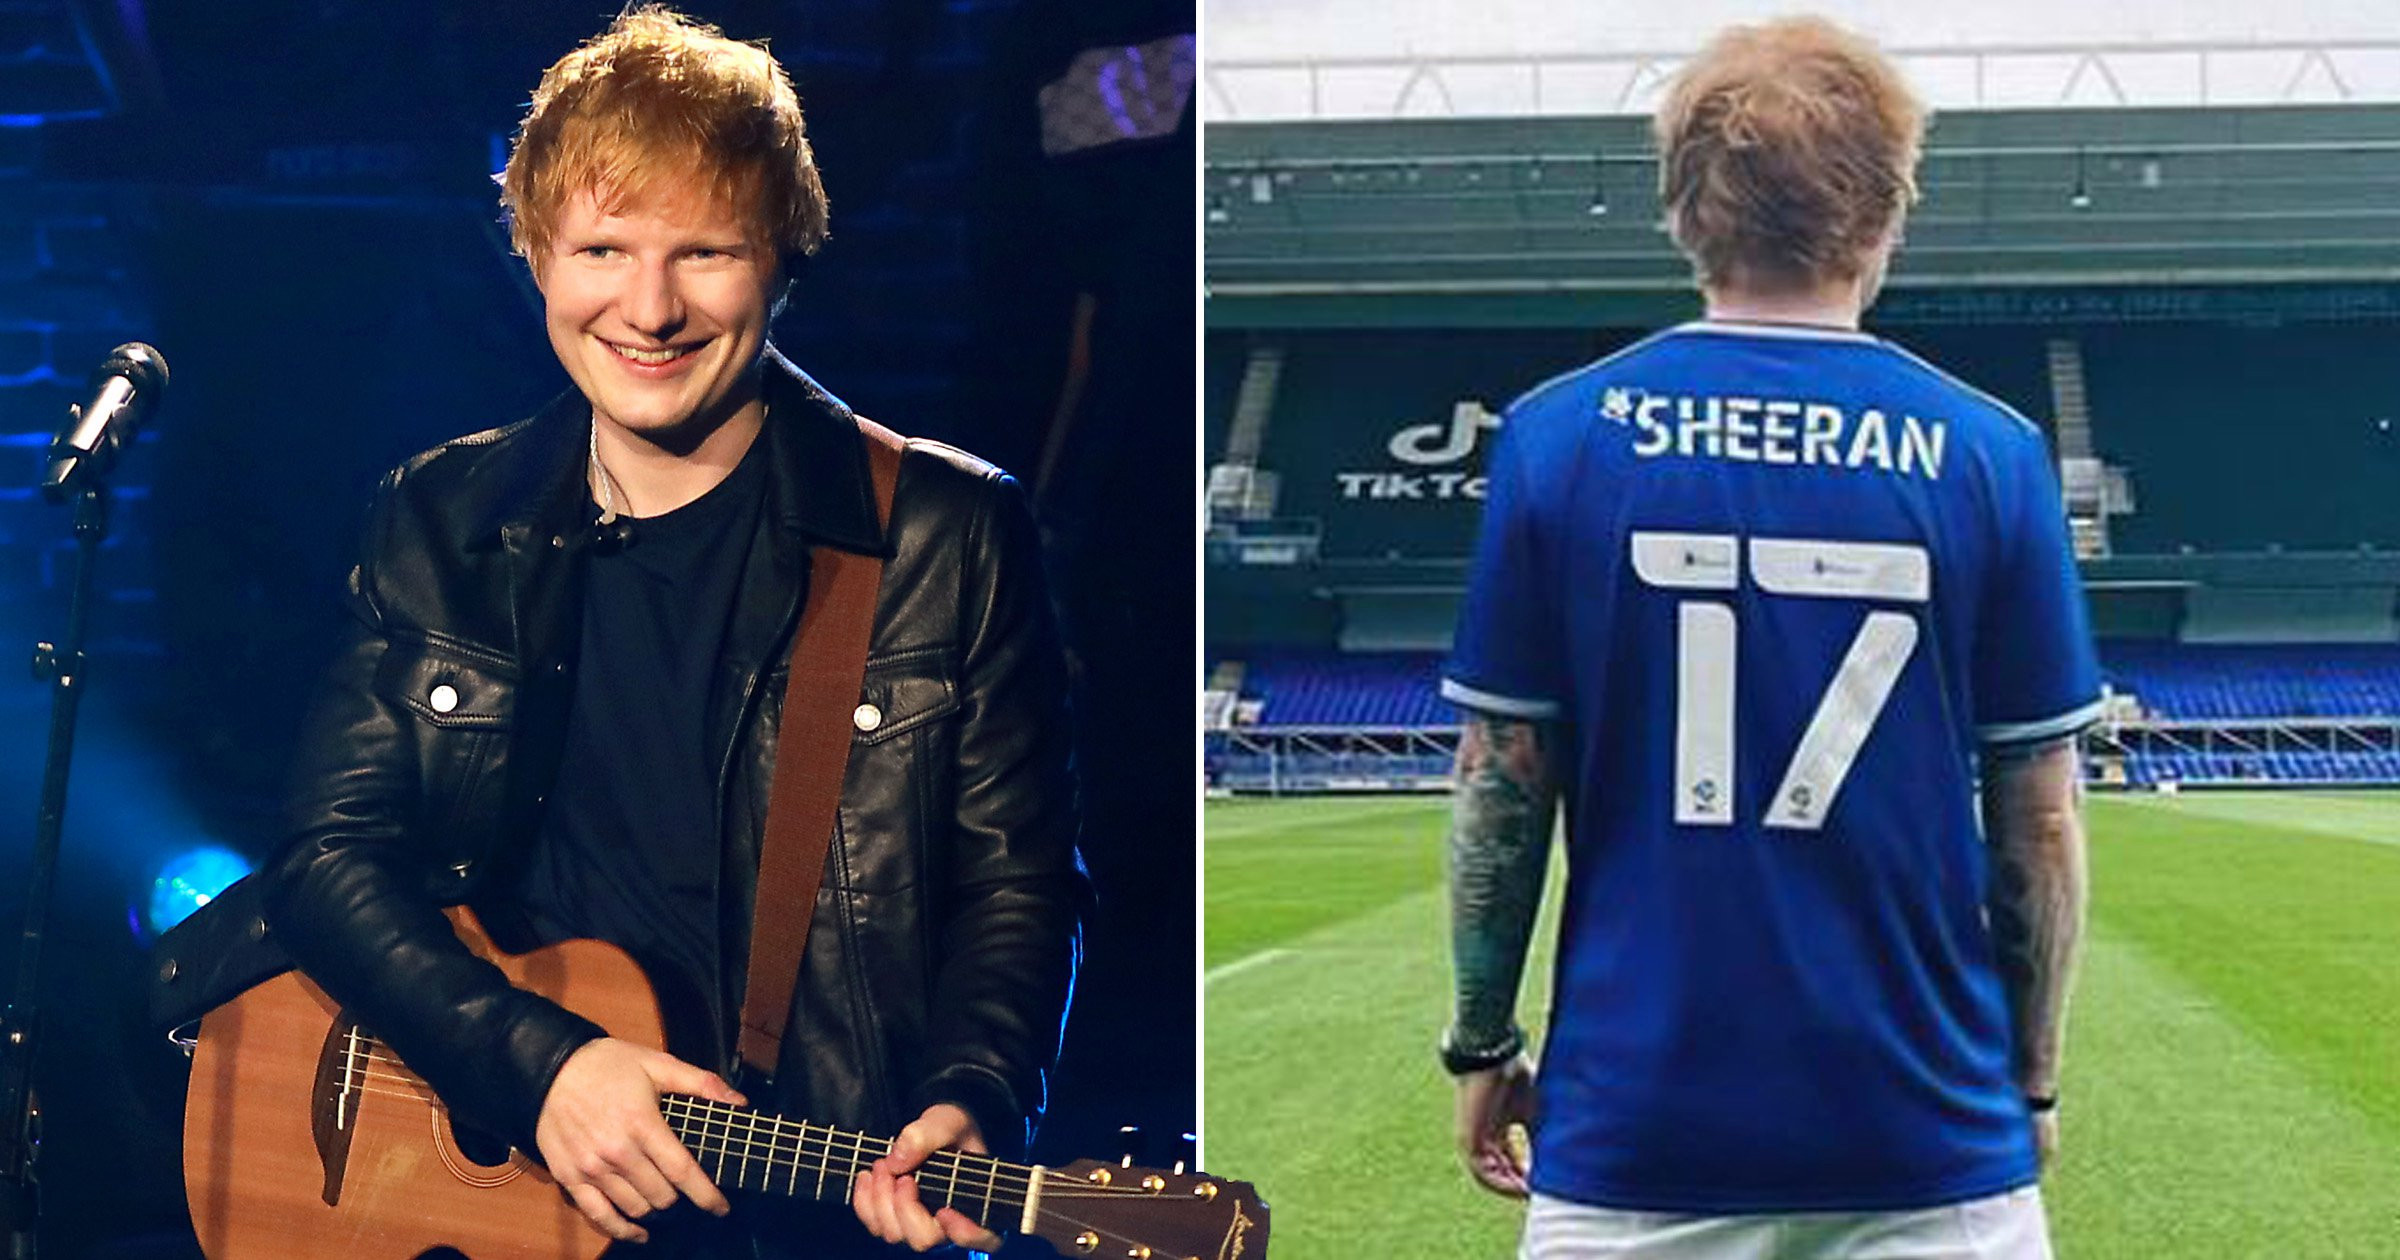 Ed Sheeran added to Ipswich Town football club's official squad list and he's over the moon about it